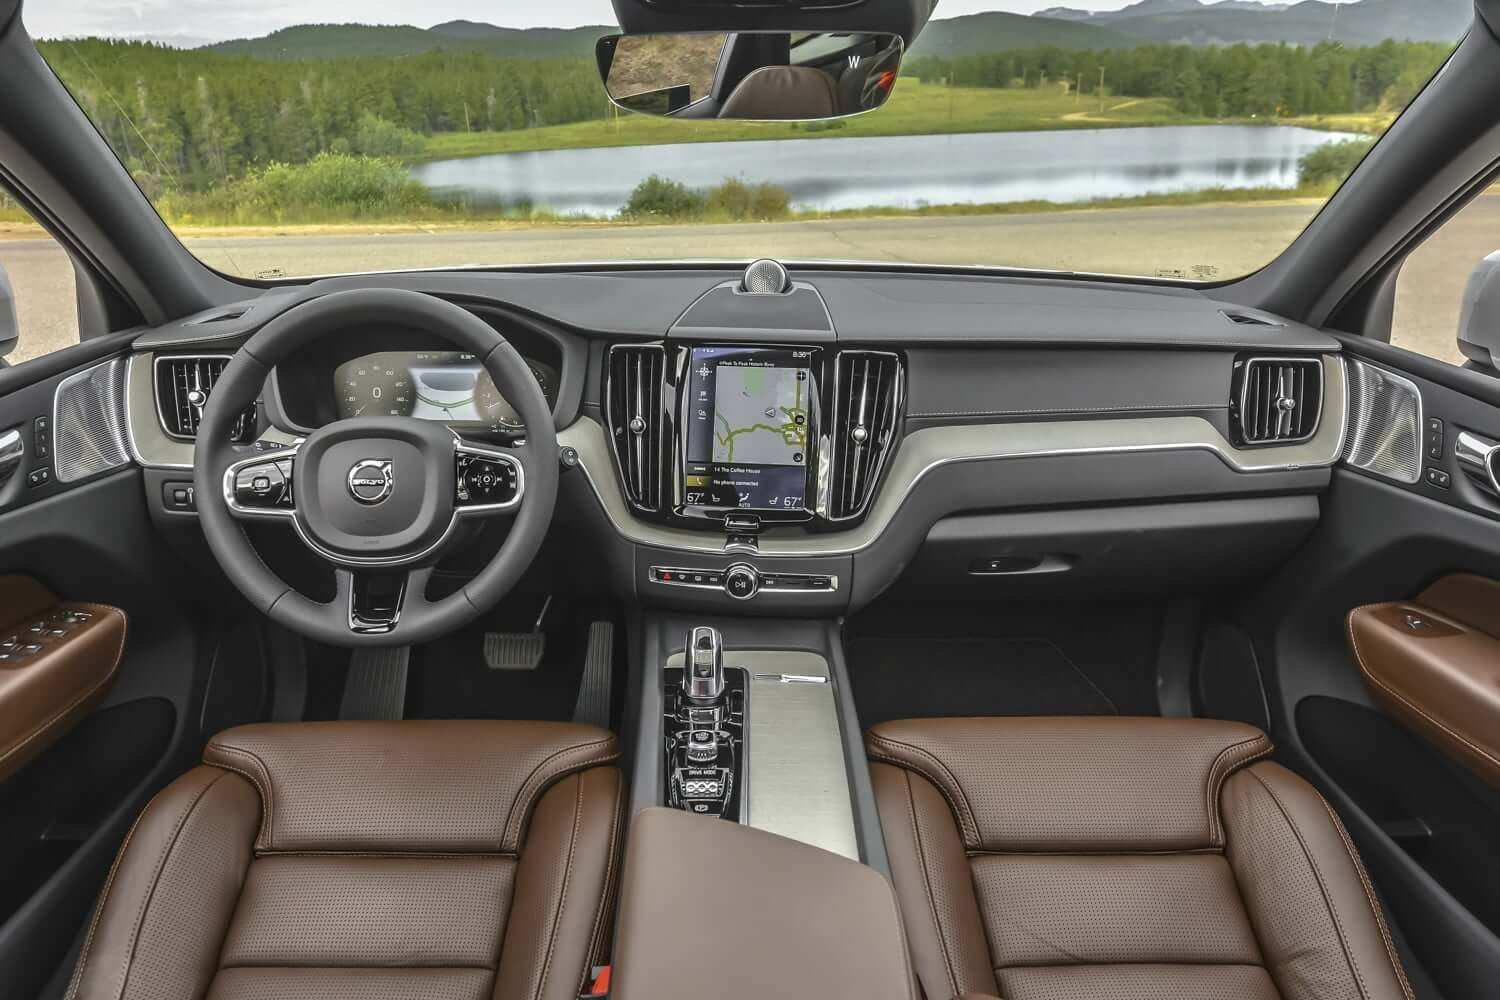 99 The Volvo V40 2019 Interior Exterior and Interior for Volvo V40 2019 Interior